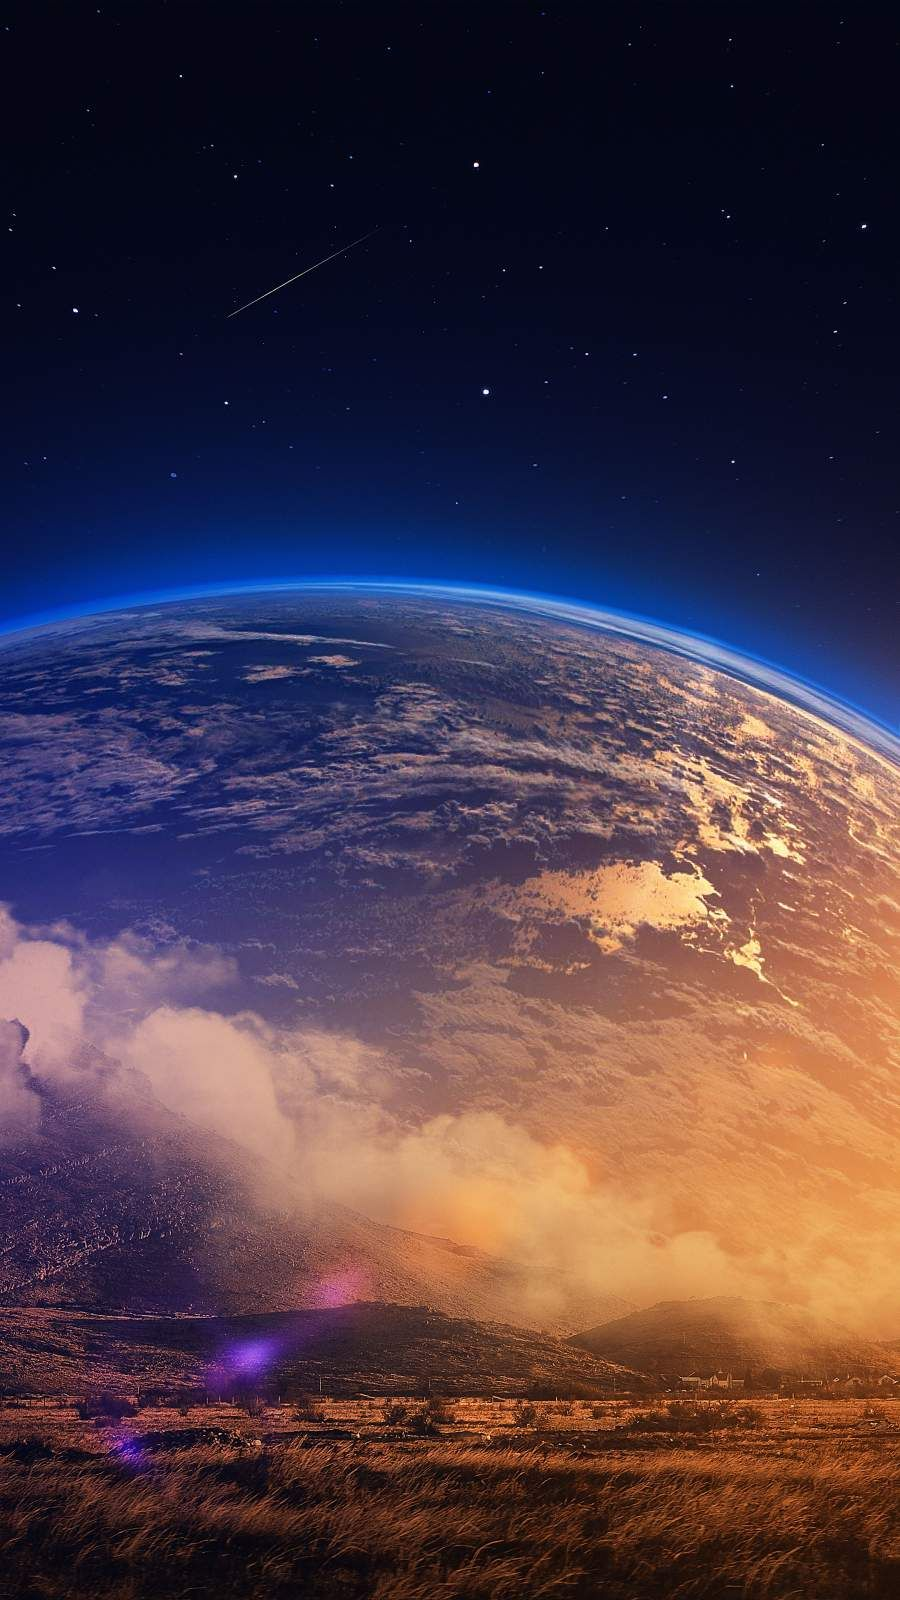 Earth View iPhone Wallpaper - iPhone Wallpapers